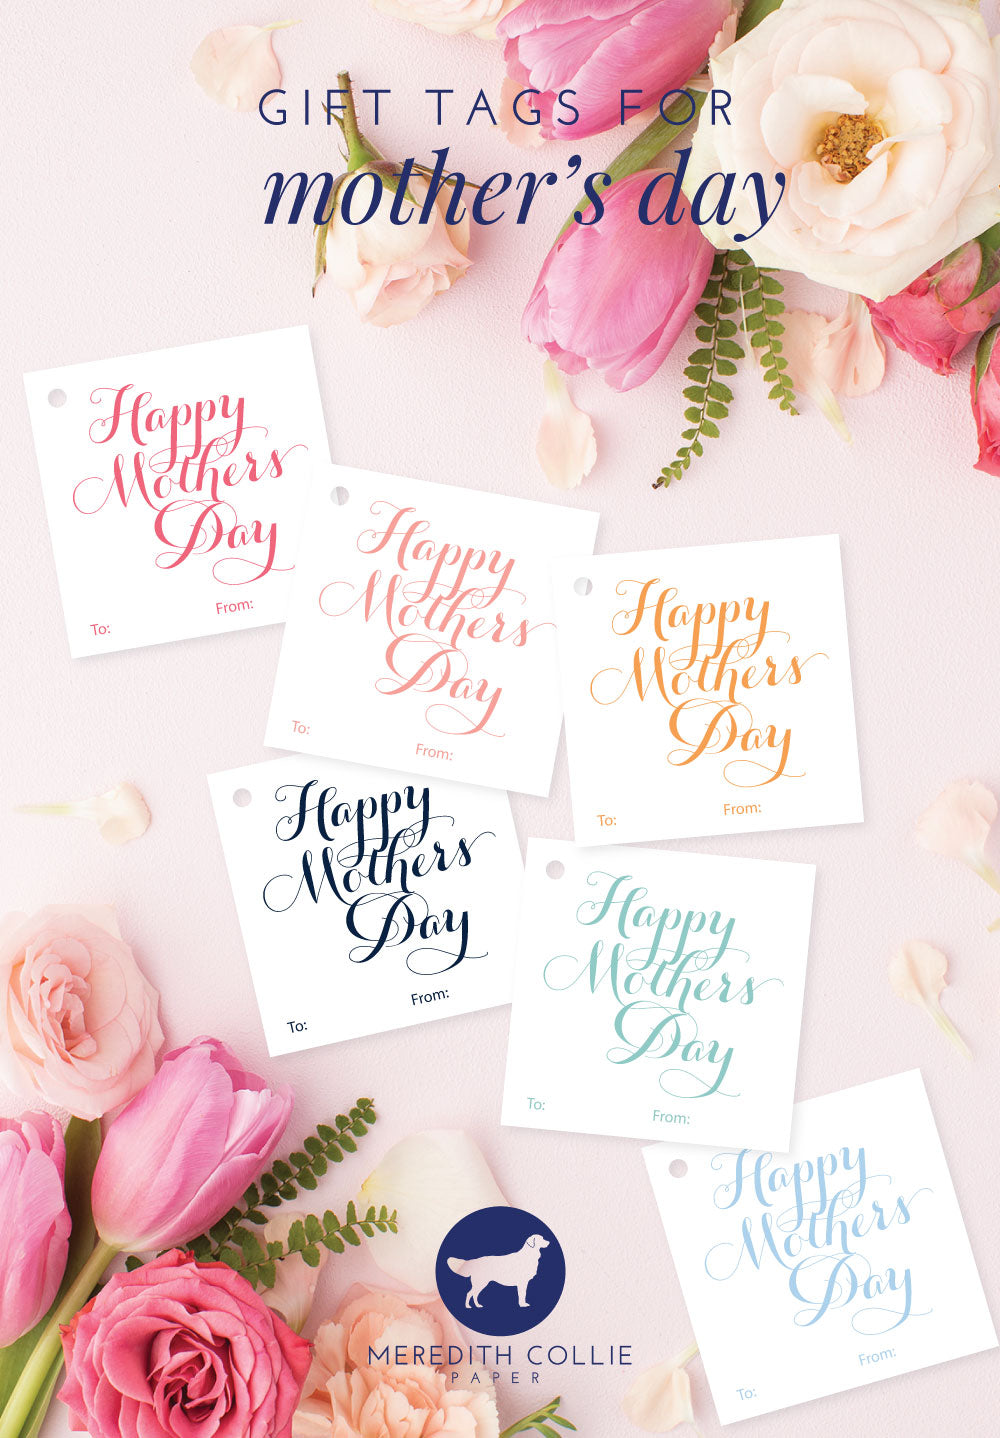 Mother's Day Gift Tags, Free Printable, Printable Library, Meredith Collie Paper